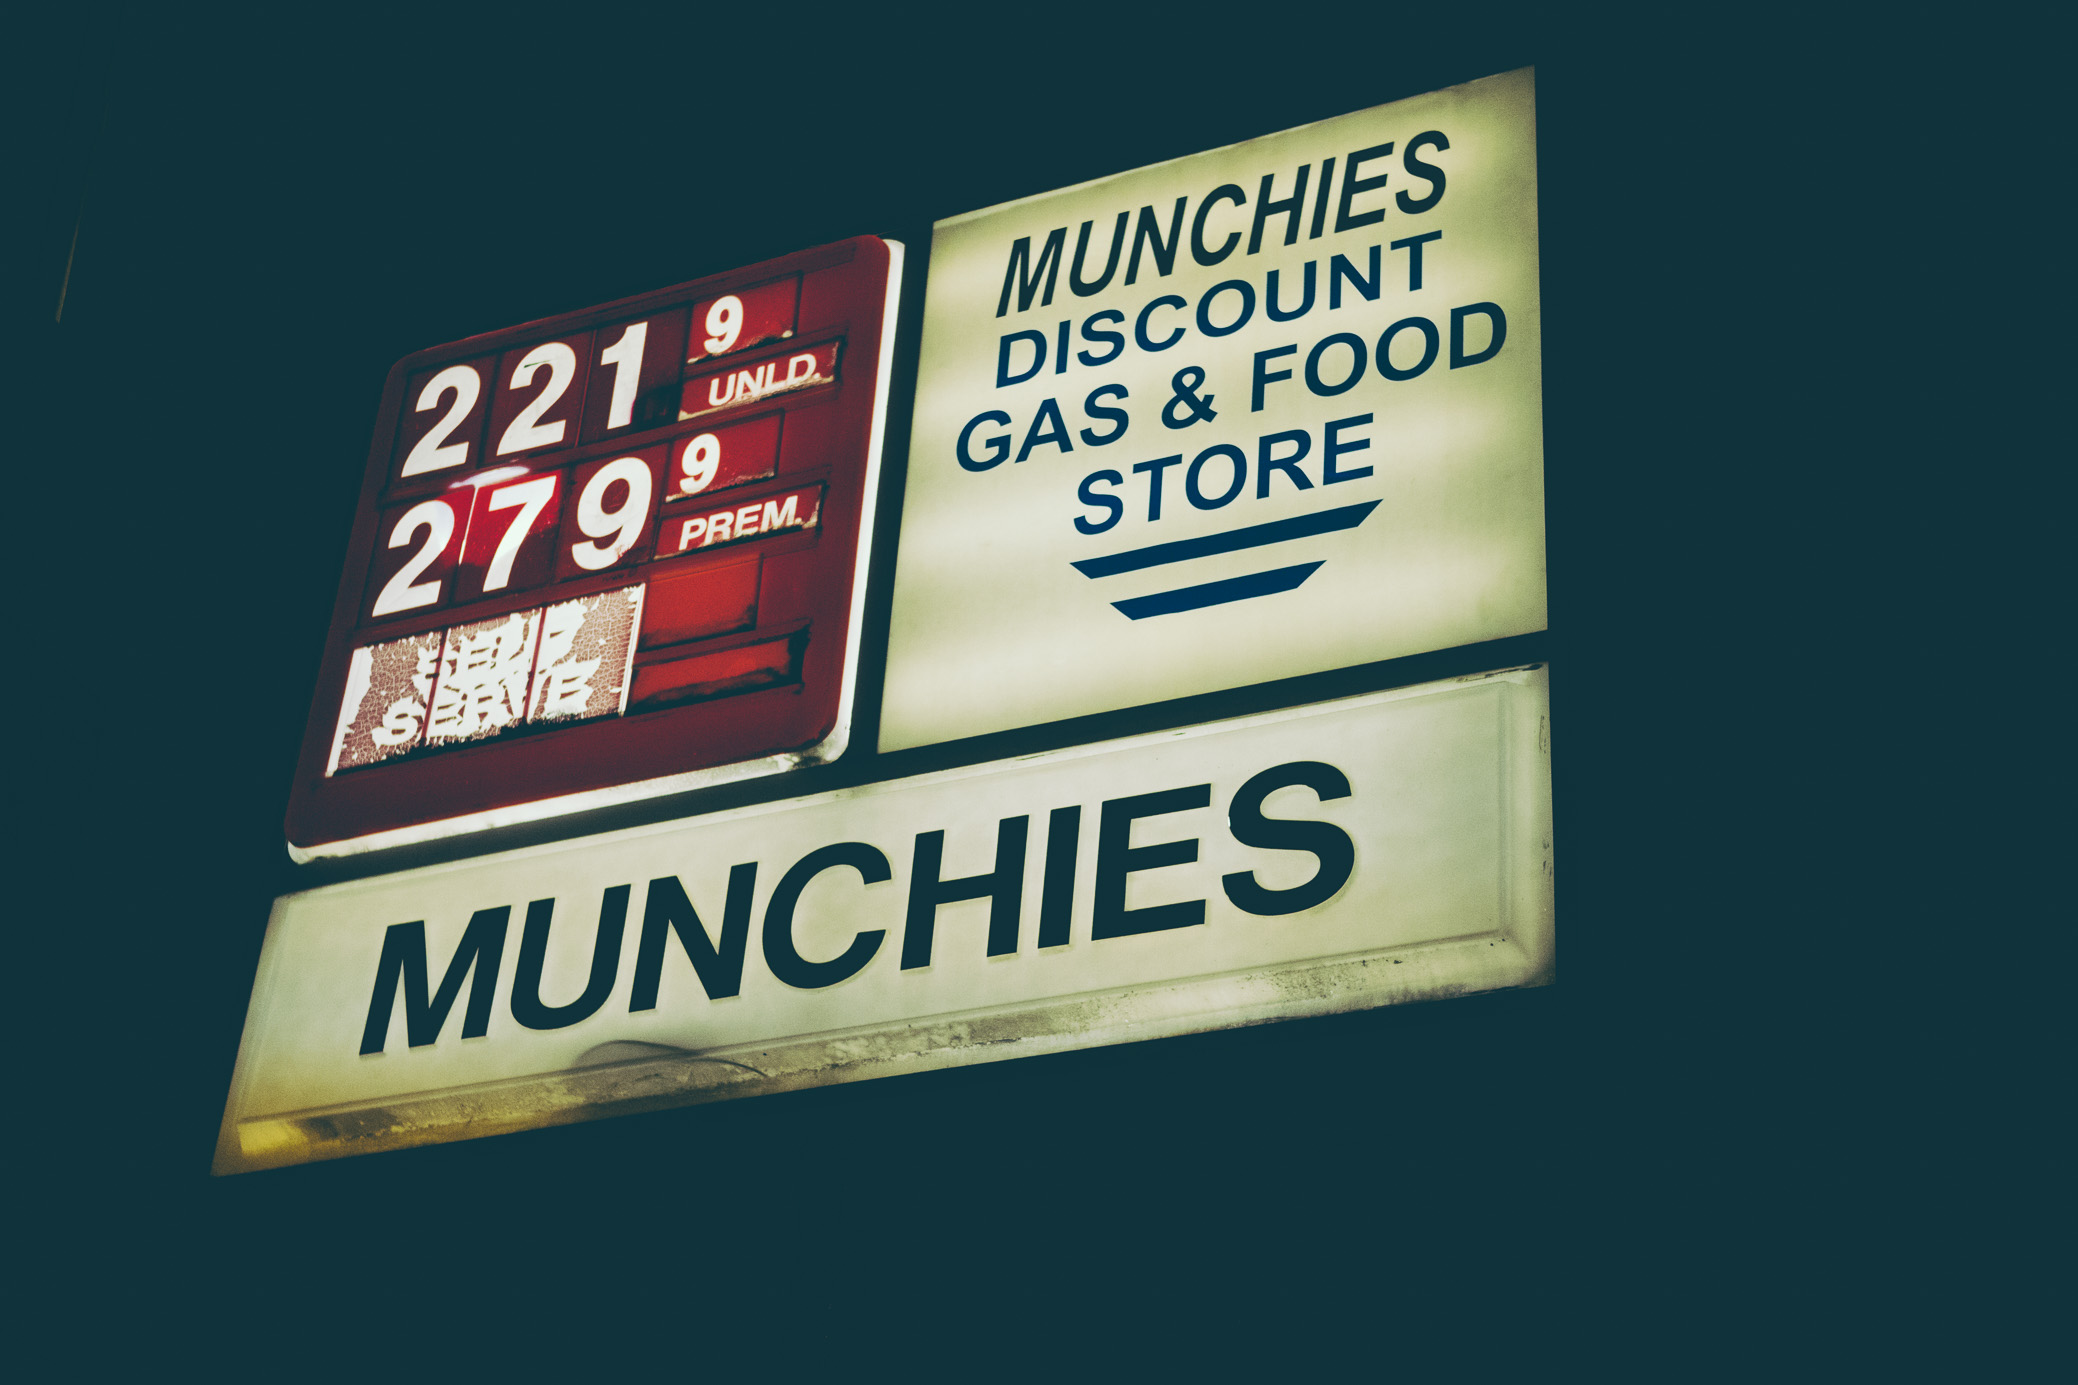 Munchies Food Store | Birmingham, Alabama | March 2nd, 2018 | (Photo by David A. Smith/DSmithScenes)